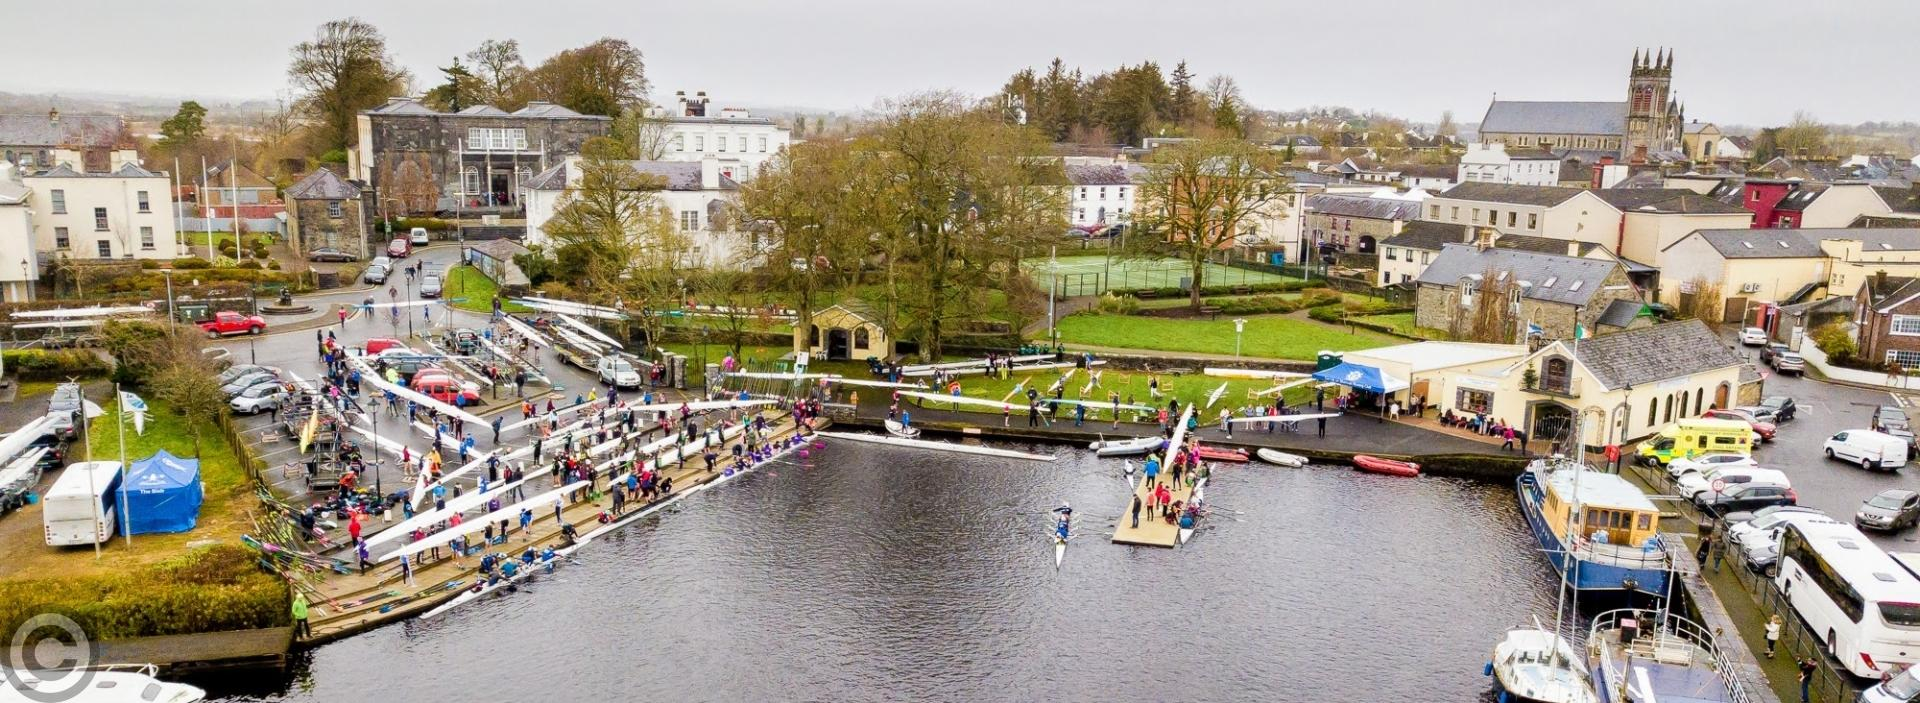 Top 10 Fun Things To Do in Carrick on Shannon, Ireland